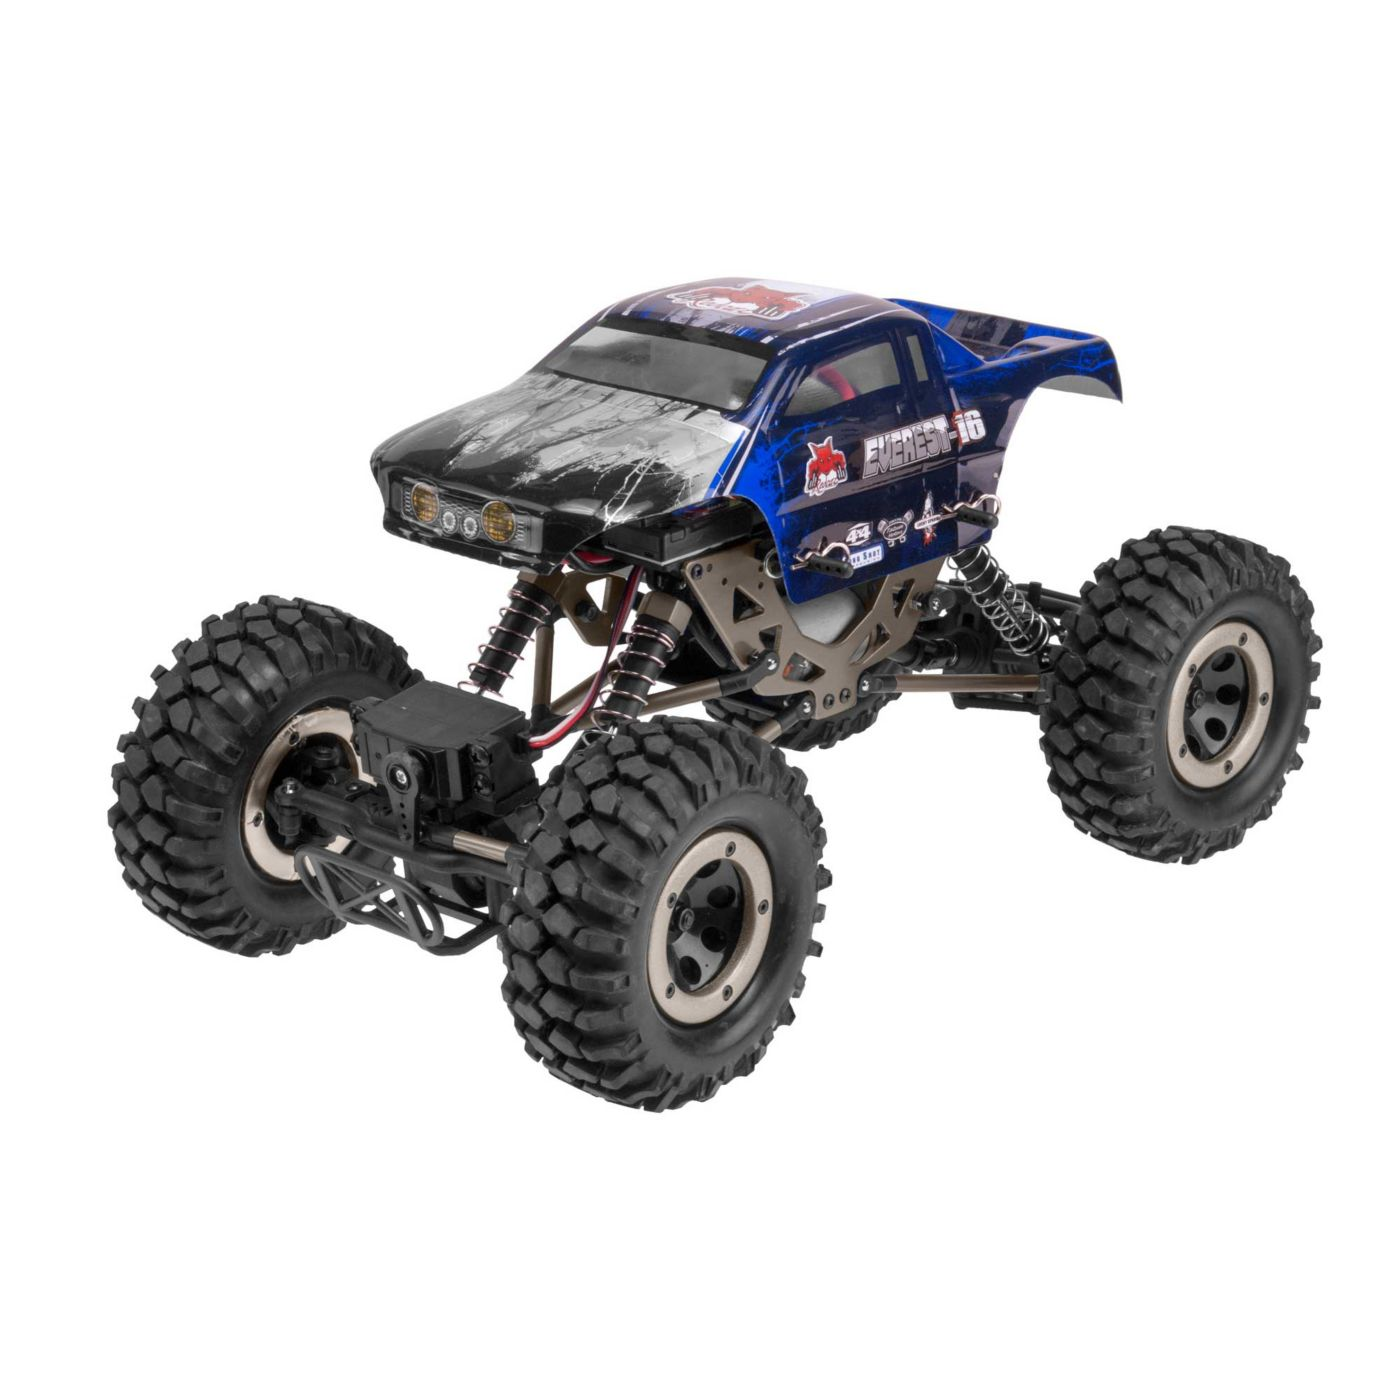 RedCat RER06899 - 1/16 Everest-16 4WD Rock Crawler Brushed RTR, Blue